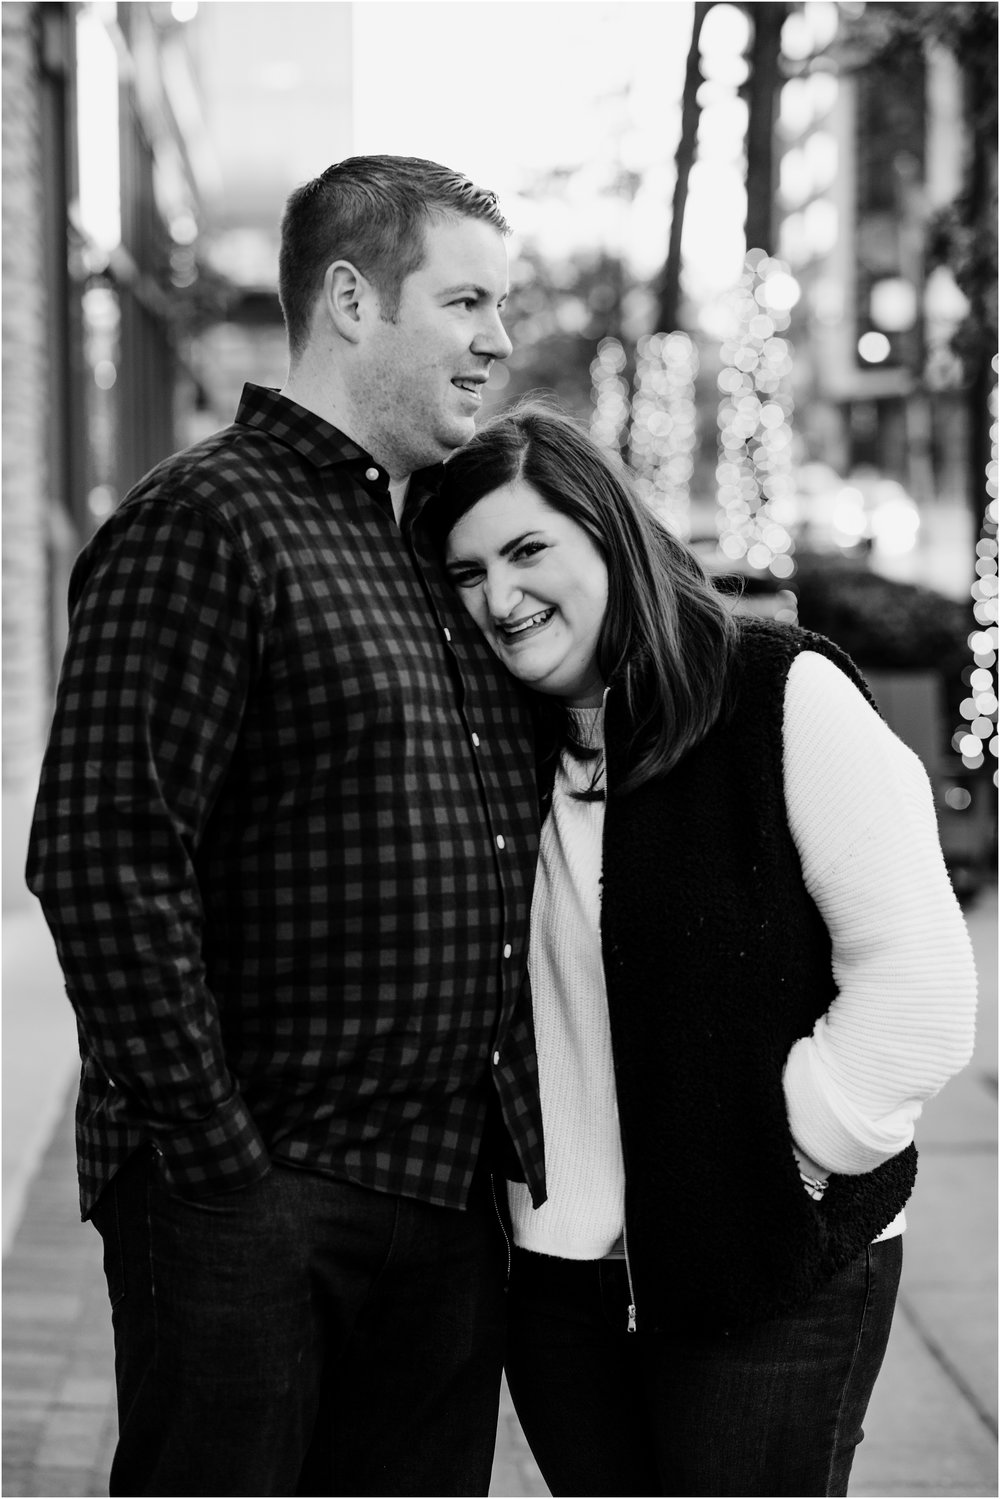 hannah leigh photography Engagement Session Bethesda MD_2539.jpg